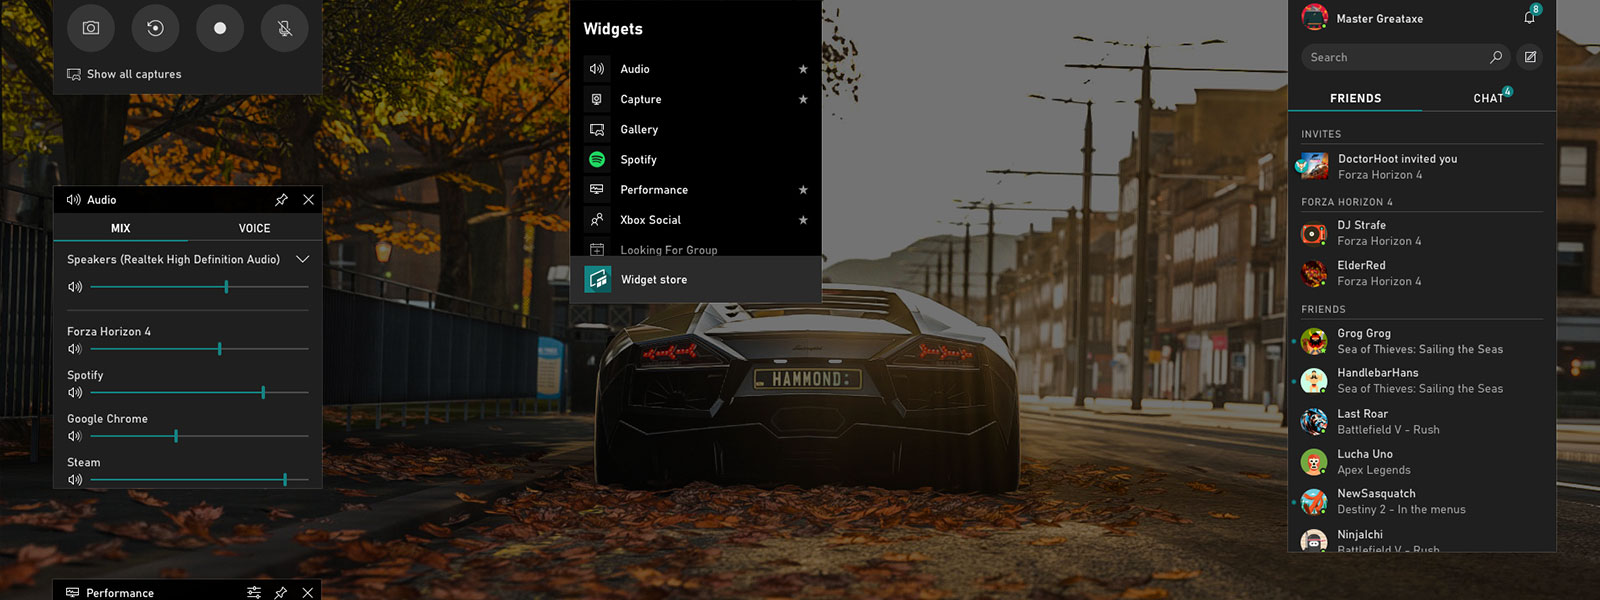 Screenshot of the default widgets on the Xbox Dash